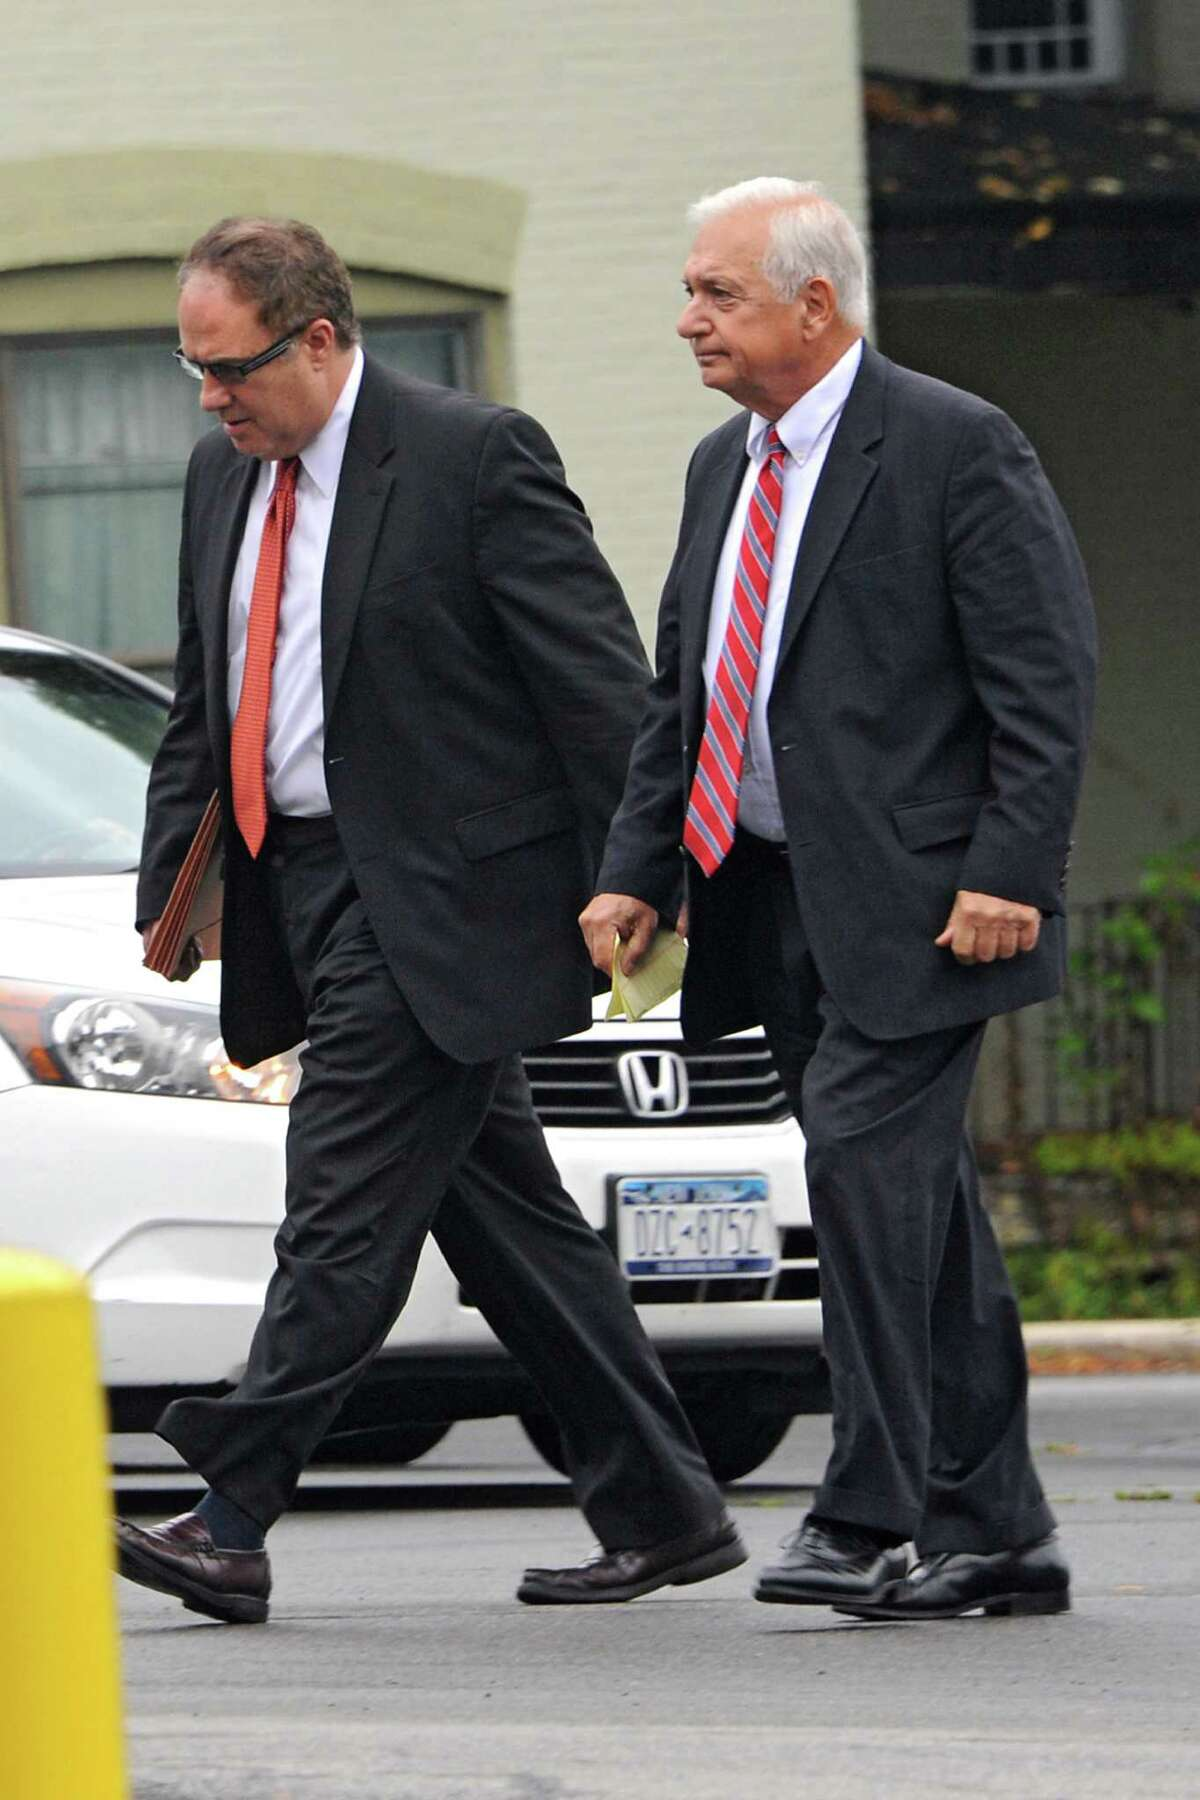 Bruce Tansk'si attorney William Dreyer, right, and Tanski's secretary Katina Fogerty's attorney John Sweeney arrive at the Saratoga County Courthouse on Friday, Aug. 22, 2014 in Ballston Spa, N.Y. Bruce Tanski, a prominent Halfmoon builder, was arrested by State Police on charges alleging he paid employees and business associates to make political contributions to the campaign account of Melinda Wormuth, a former Halfmoon town supervisor. Katina Fogerty was charged with a single count of concealing the true origin of a campaign donation. (Lori Van Buren / Times Union)